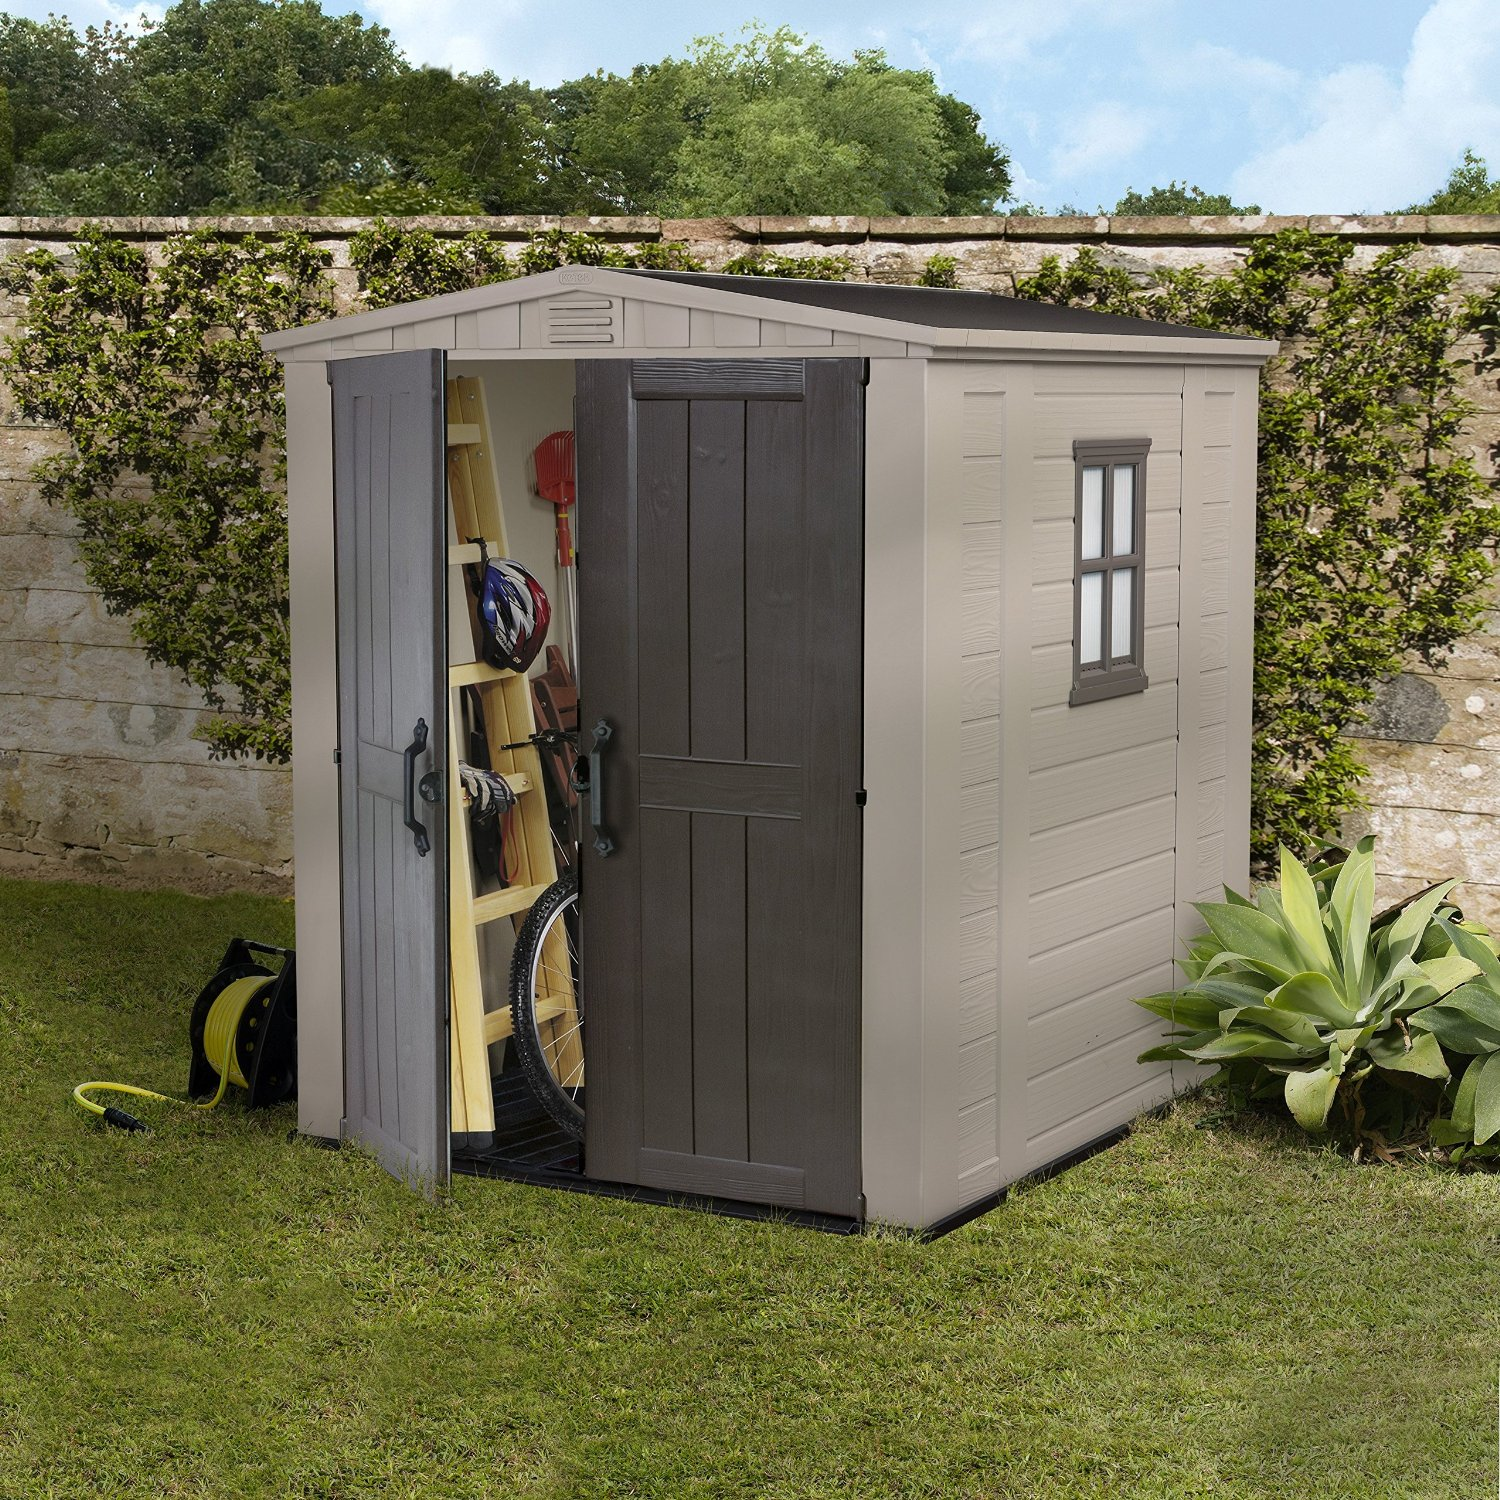 6 x 6 Storage Shed - Quality Plastic Sheds